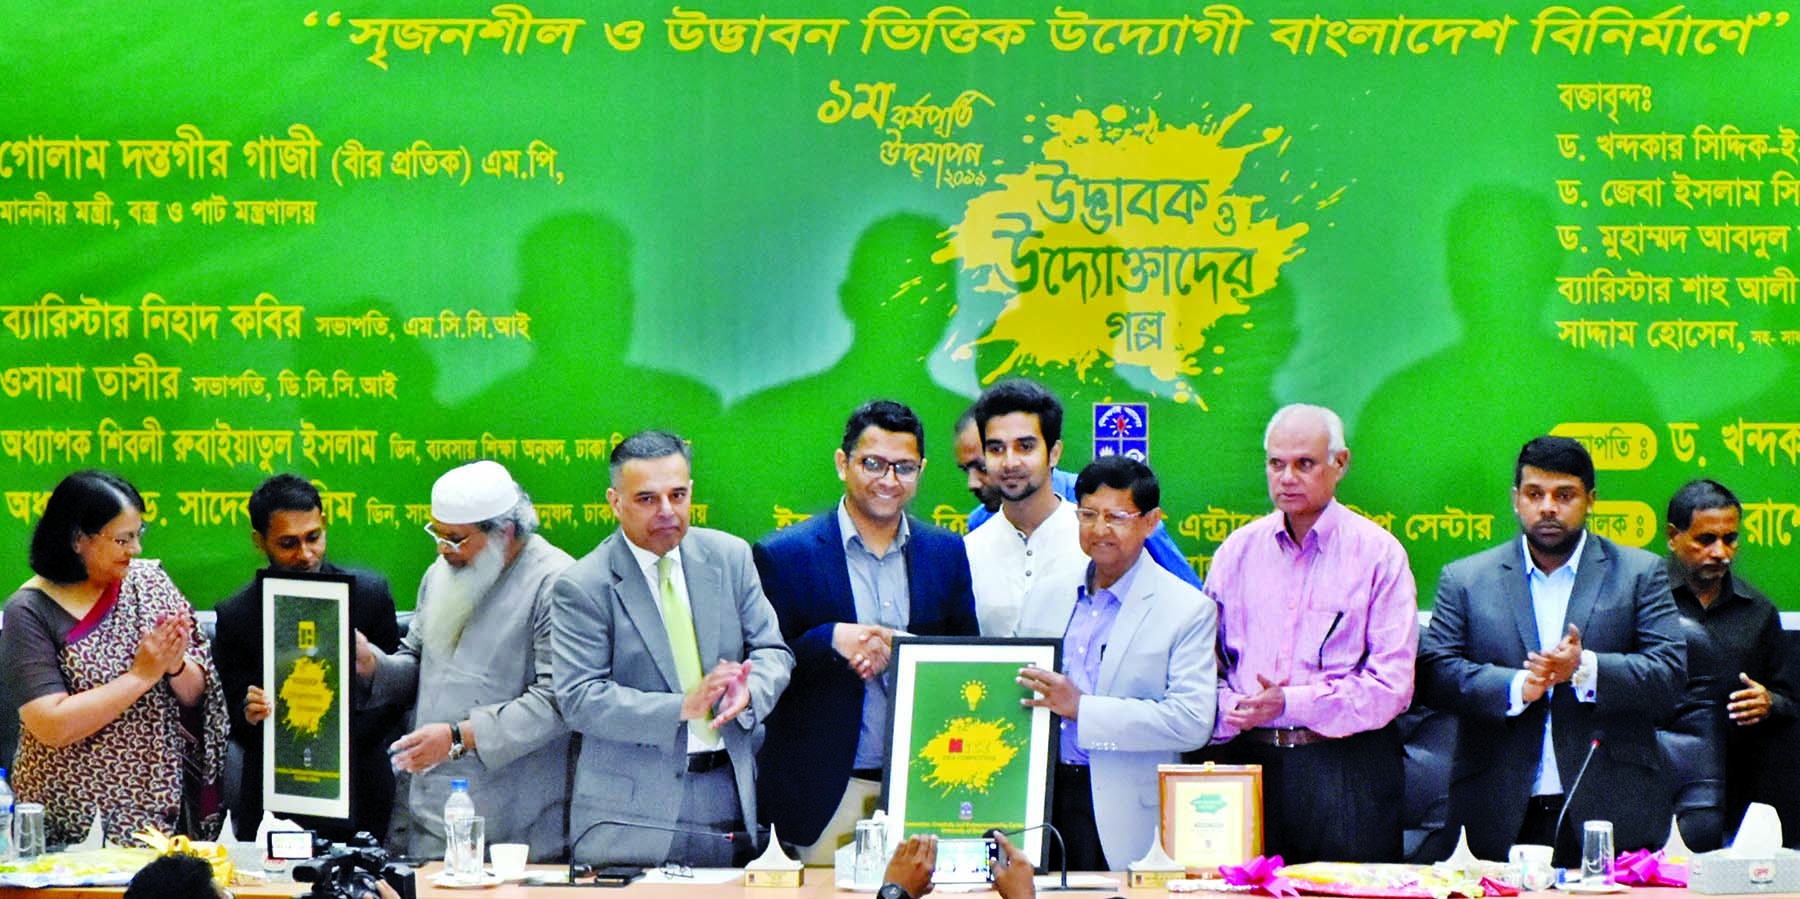 Minister for Textiles and Jute Golam Dastagir receiving a logo at Innovation, Creativity and Entrepreneurship Center of Dhaka University in observance of its first founding anniversary on Monday.